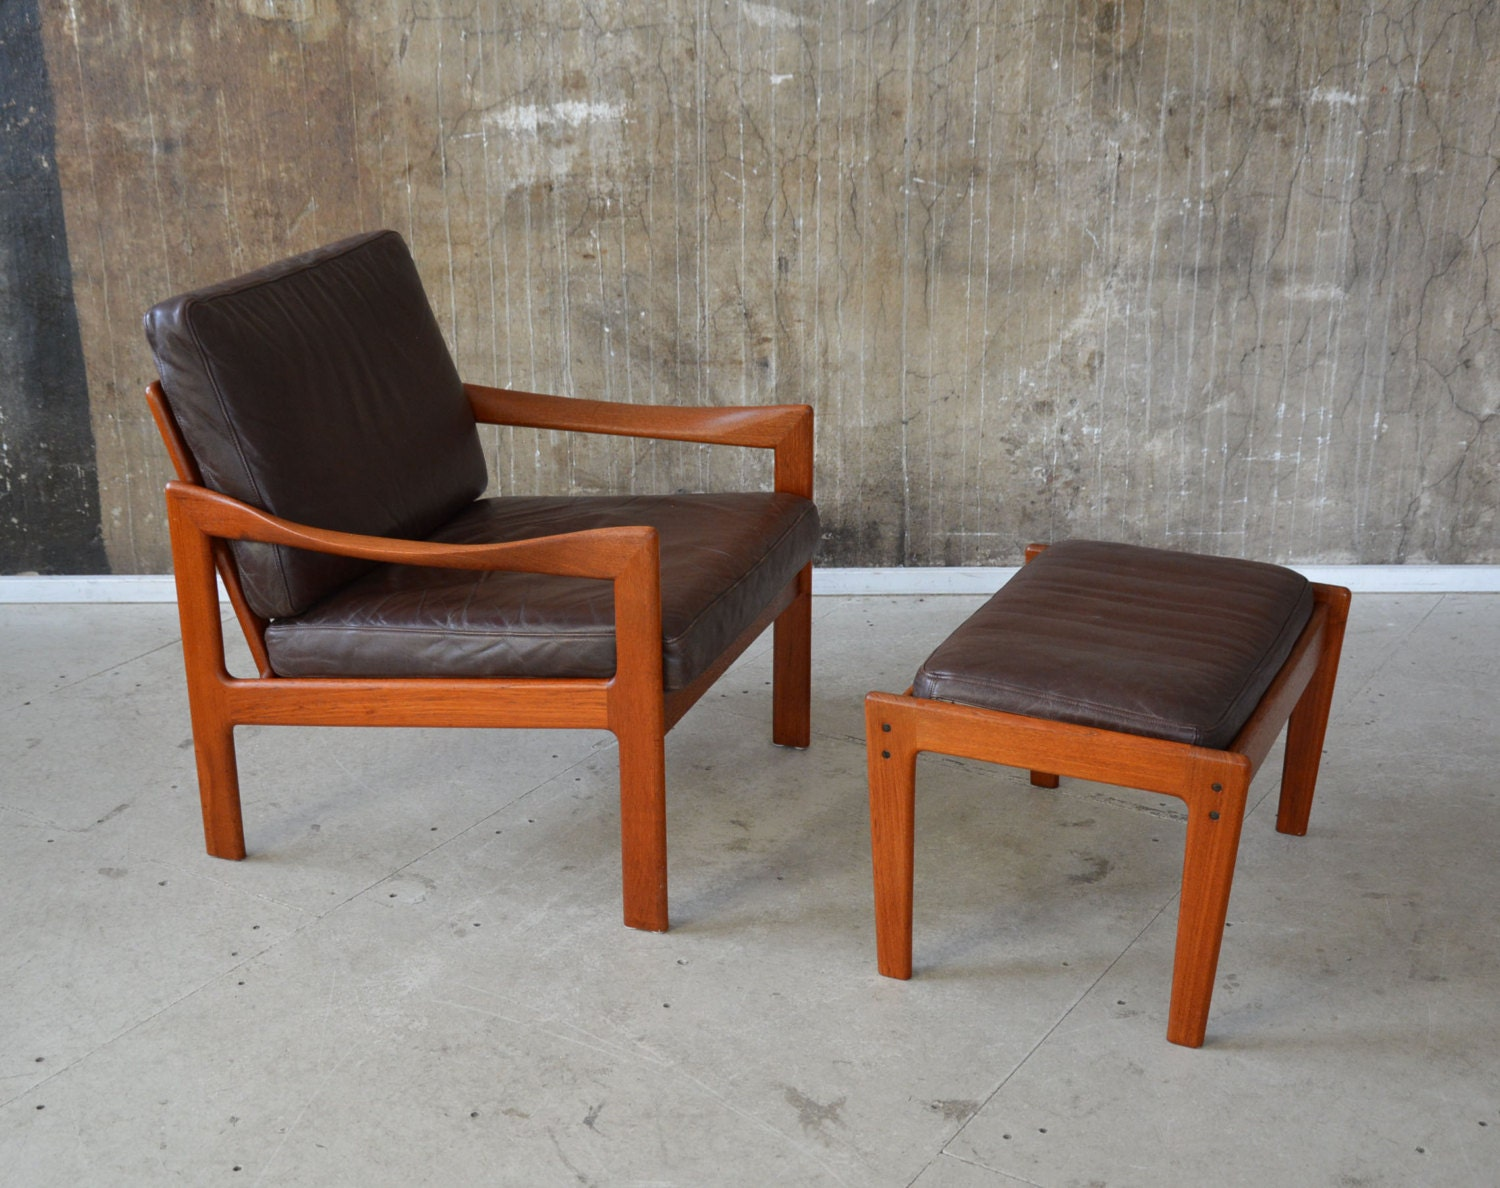 60er illum wikkelso teak sessel hocker n eilersen 60s. Black Bedroom Furniture Sets. Home Design Ideas